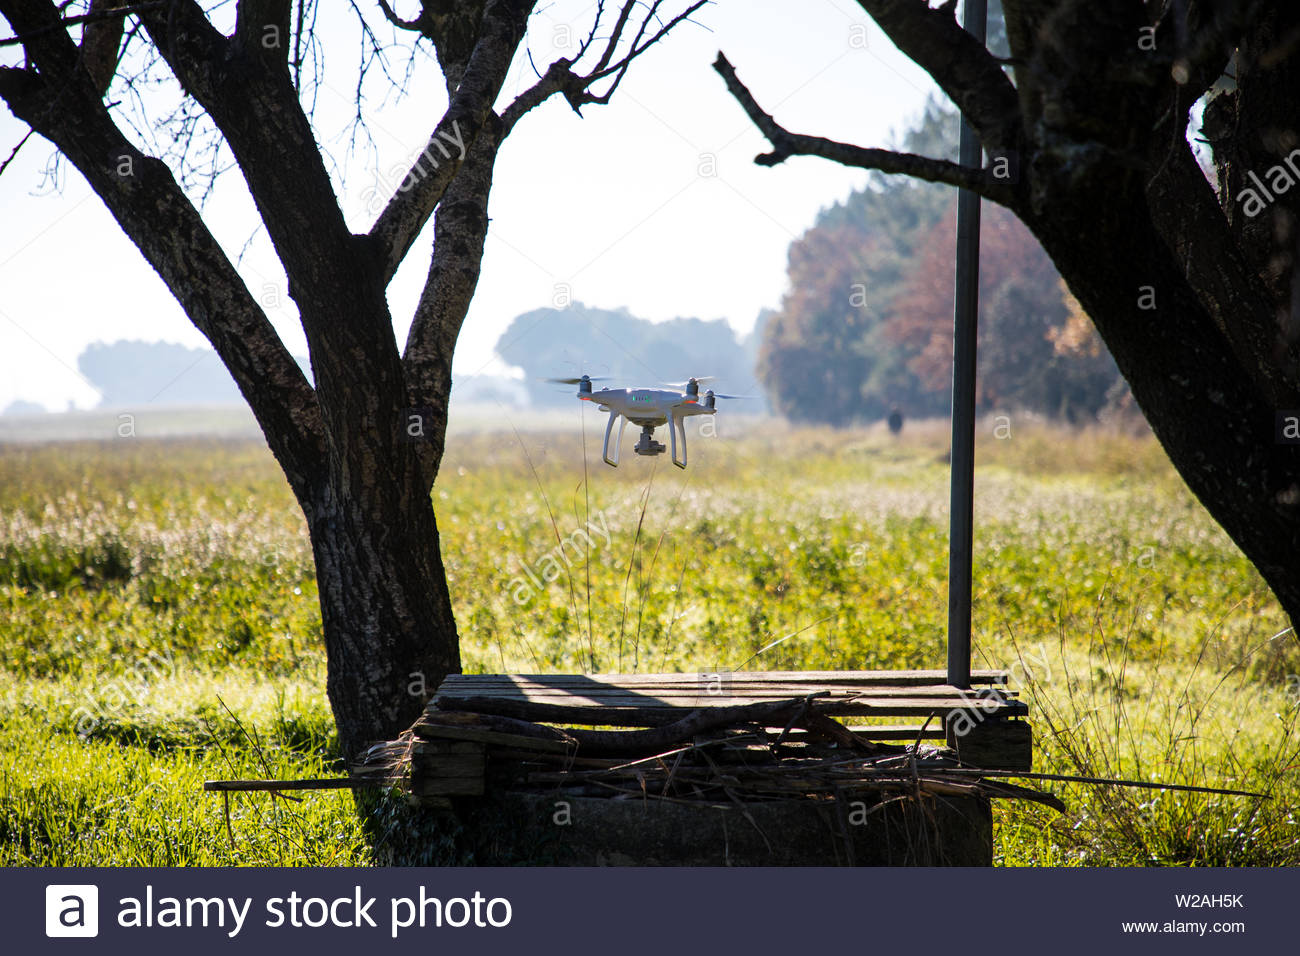 Drone over water well and under tree on sunny winter morning - Stock Image